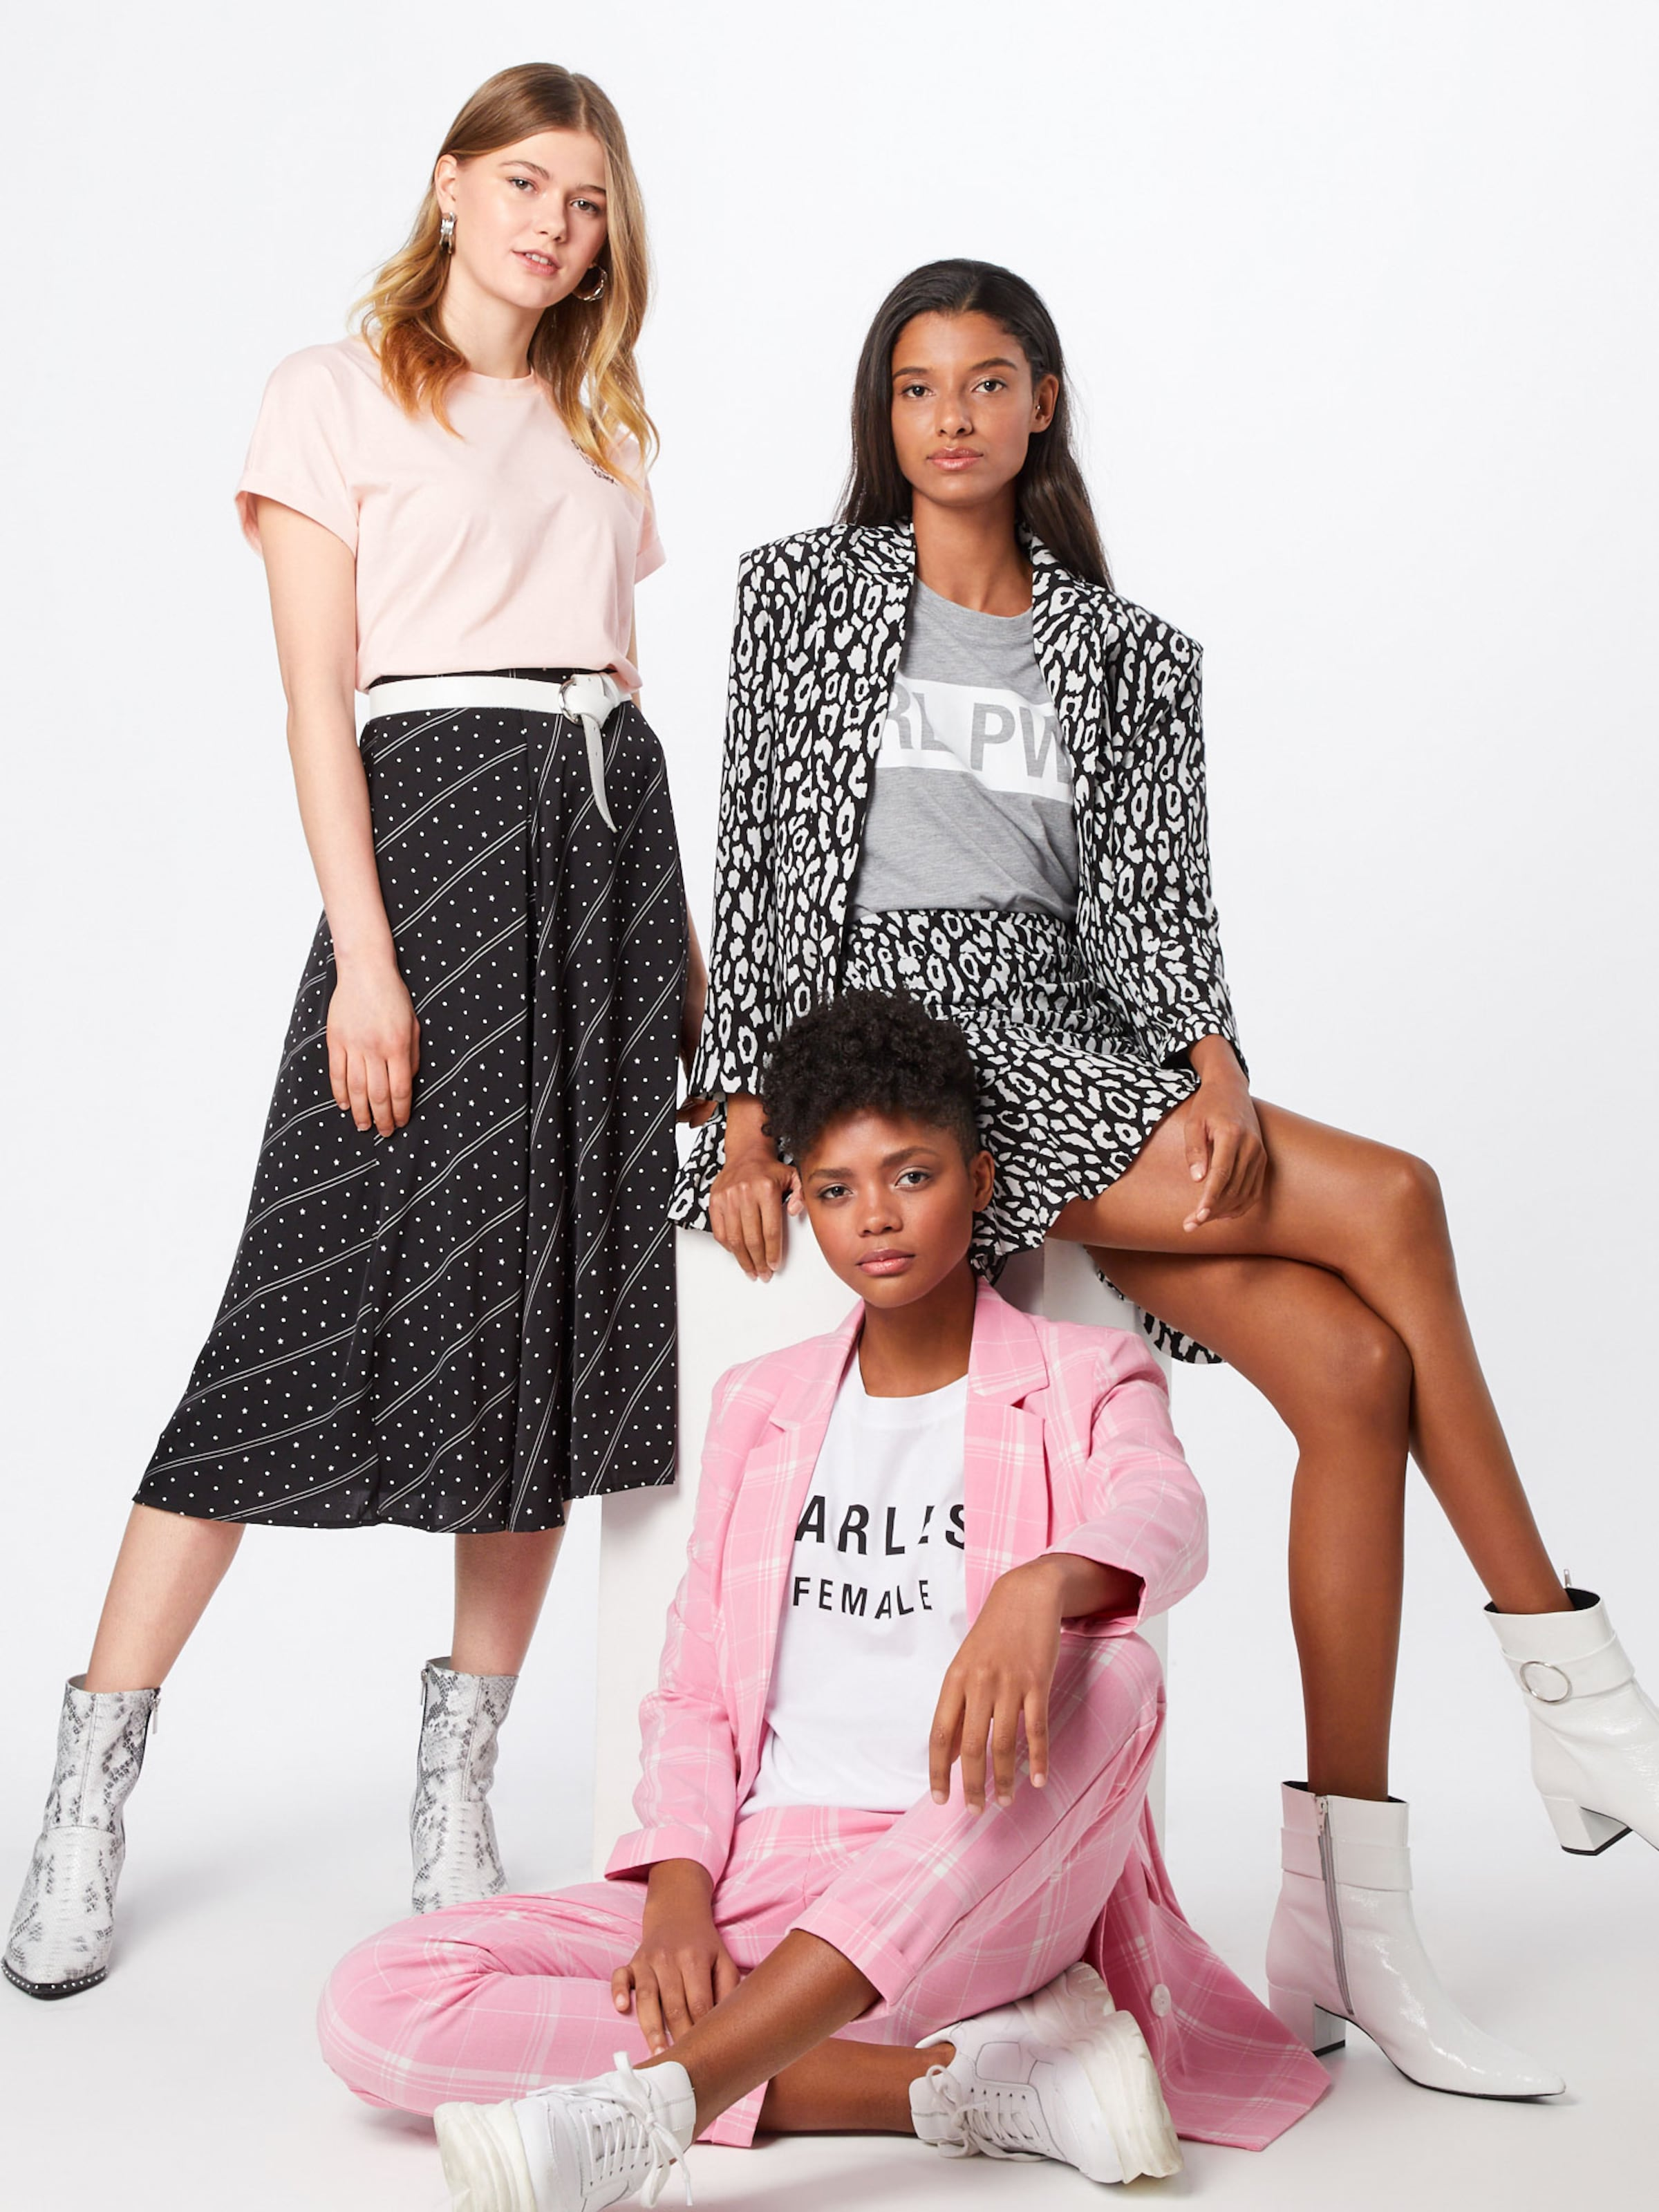 About shirt En Rosé You Pwr X T 'nela' Grl 4jA5LR